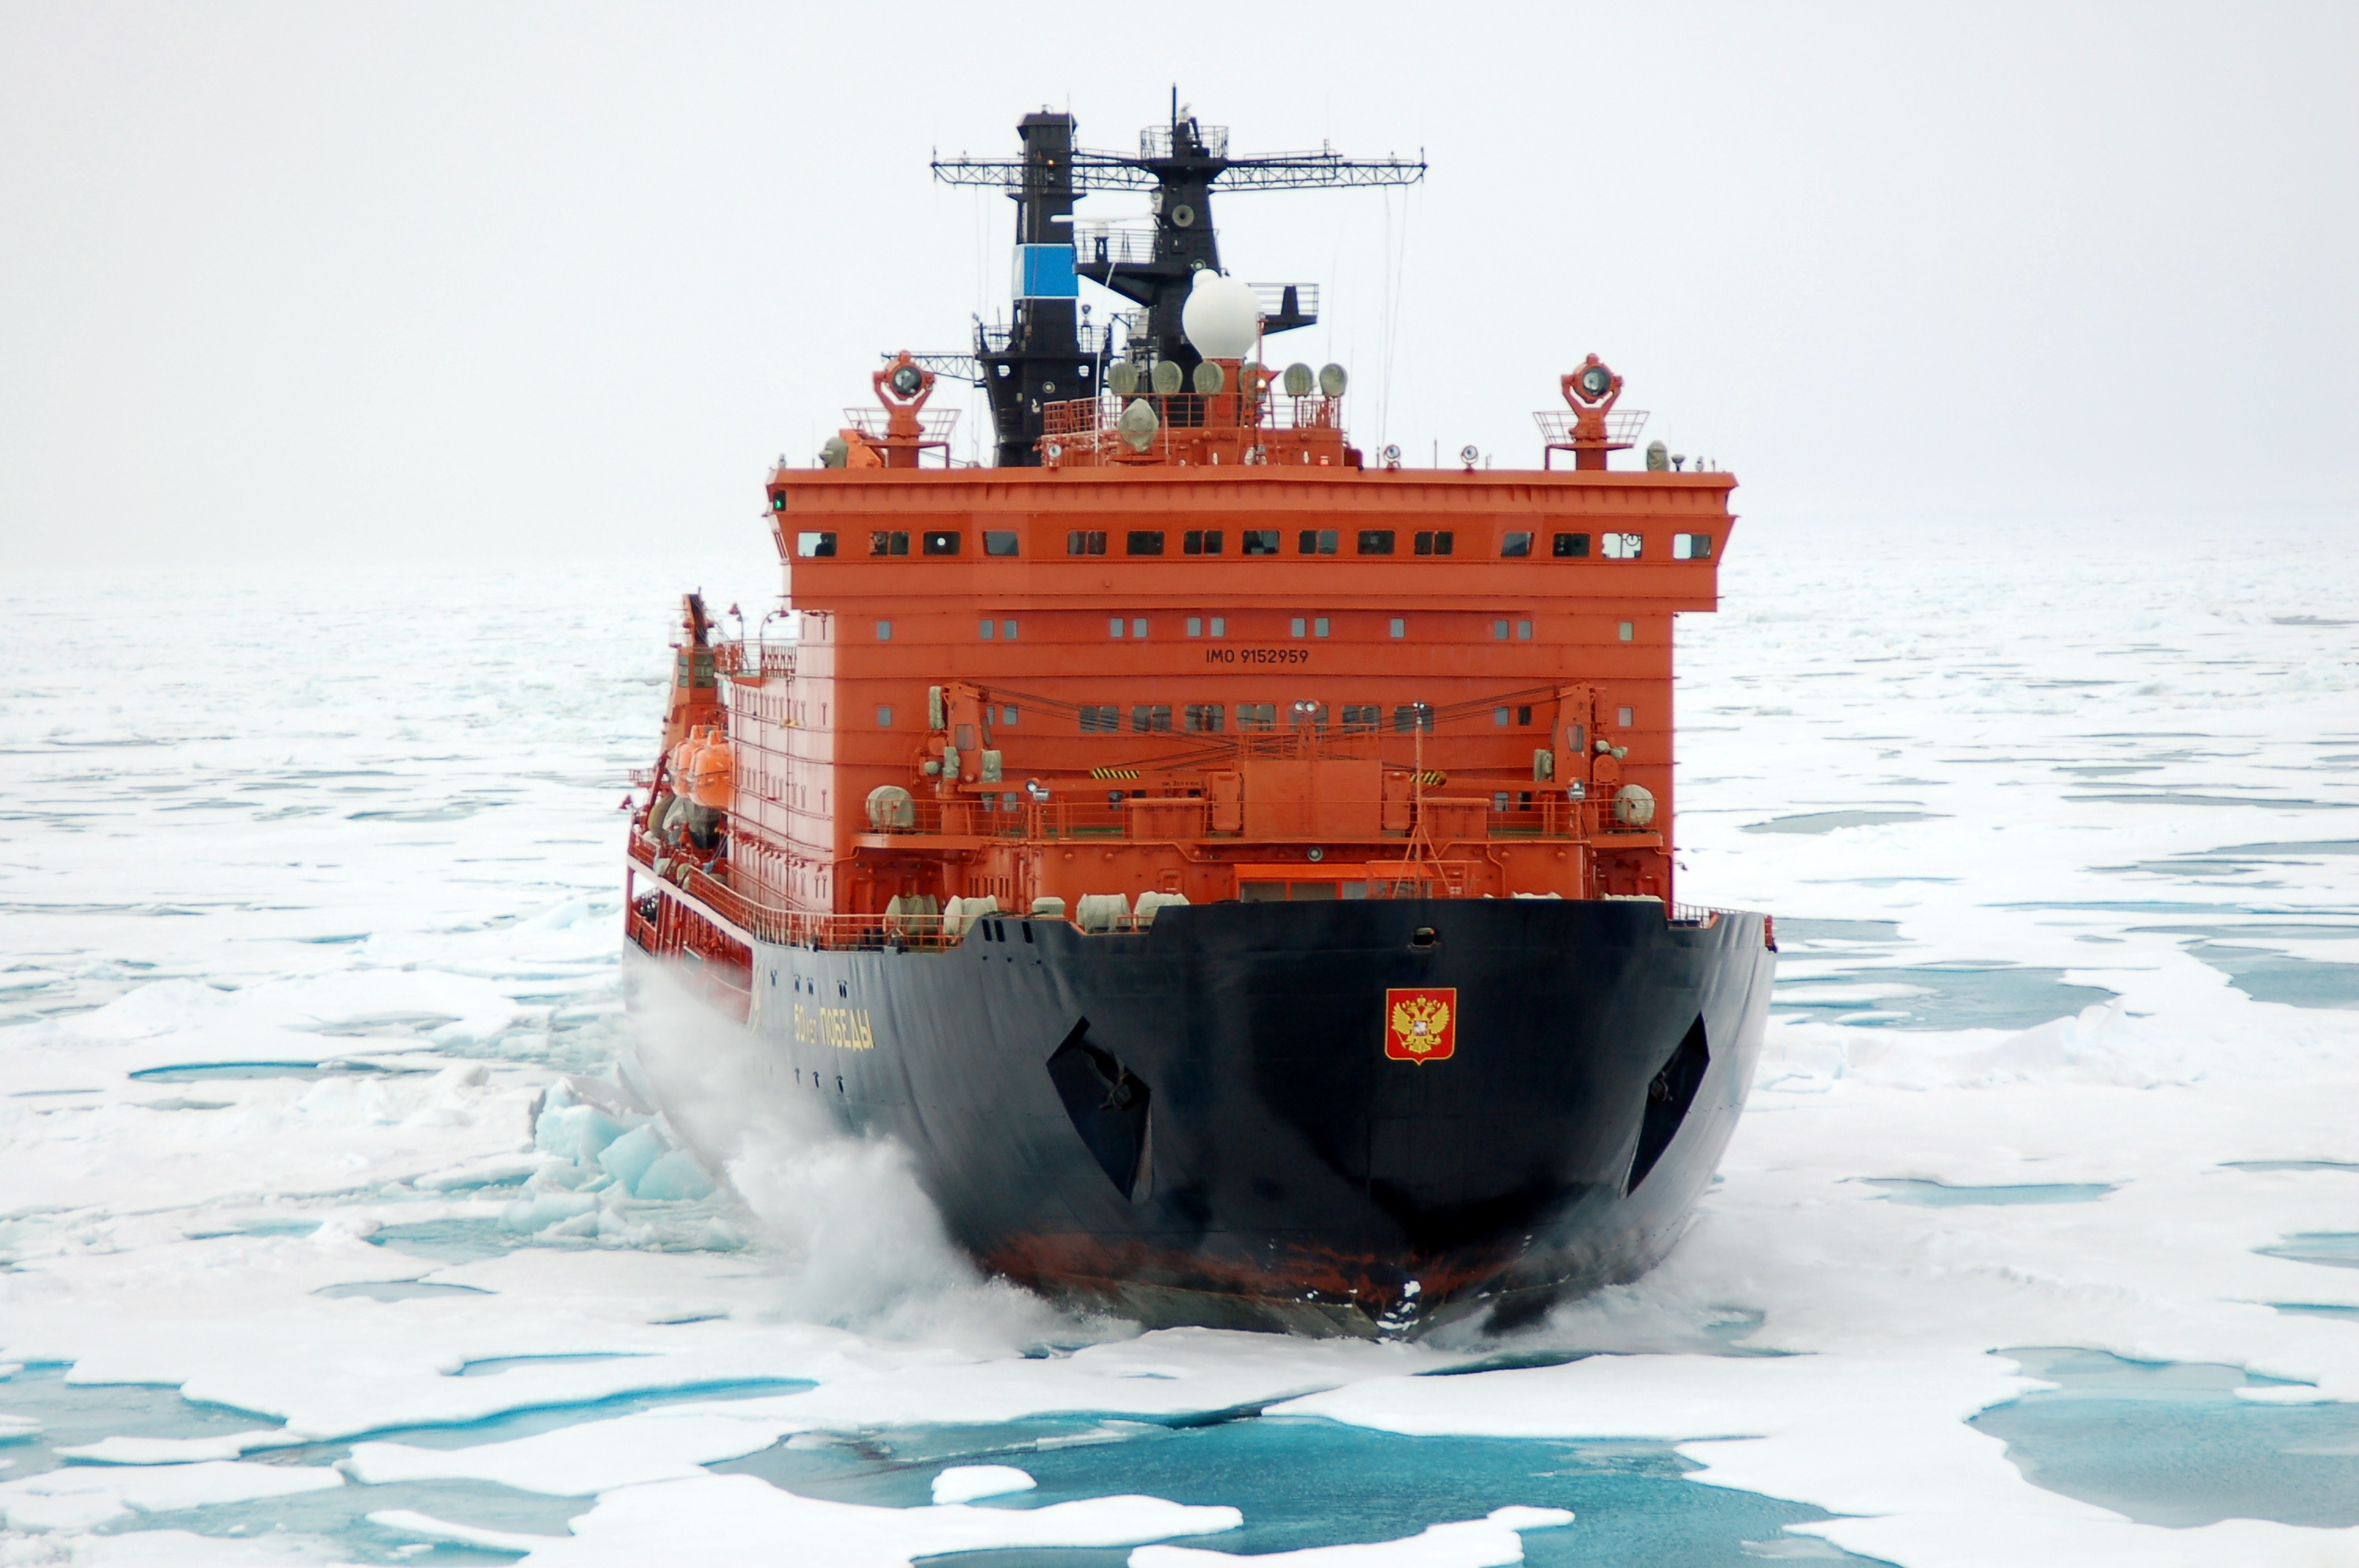 How can you get to the North Pole? Try the world's most powerful icebreaker, 50 Years of Victory.